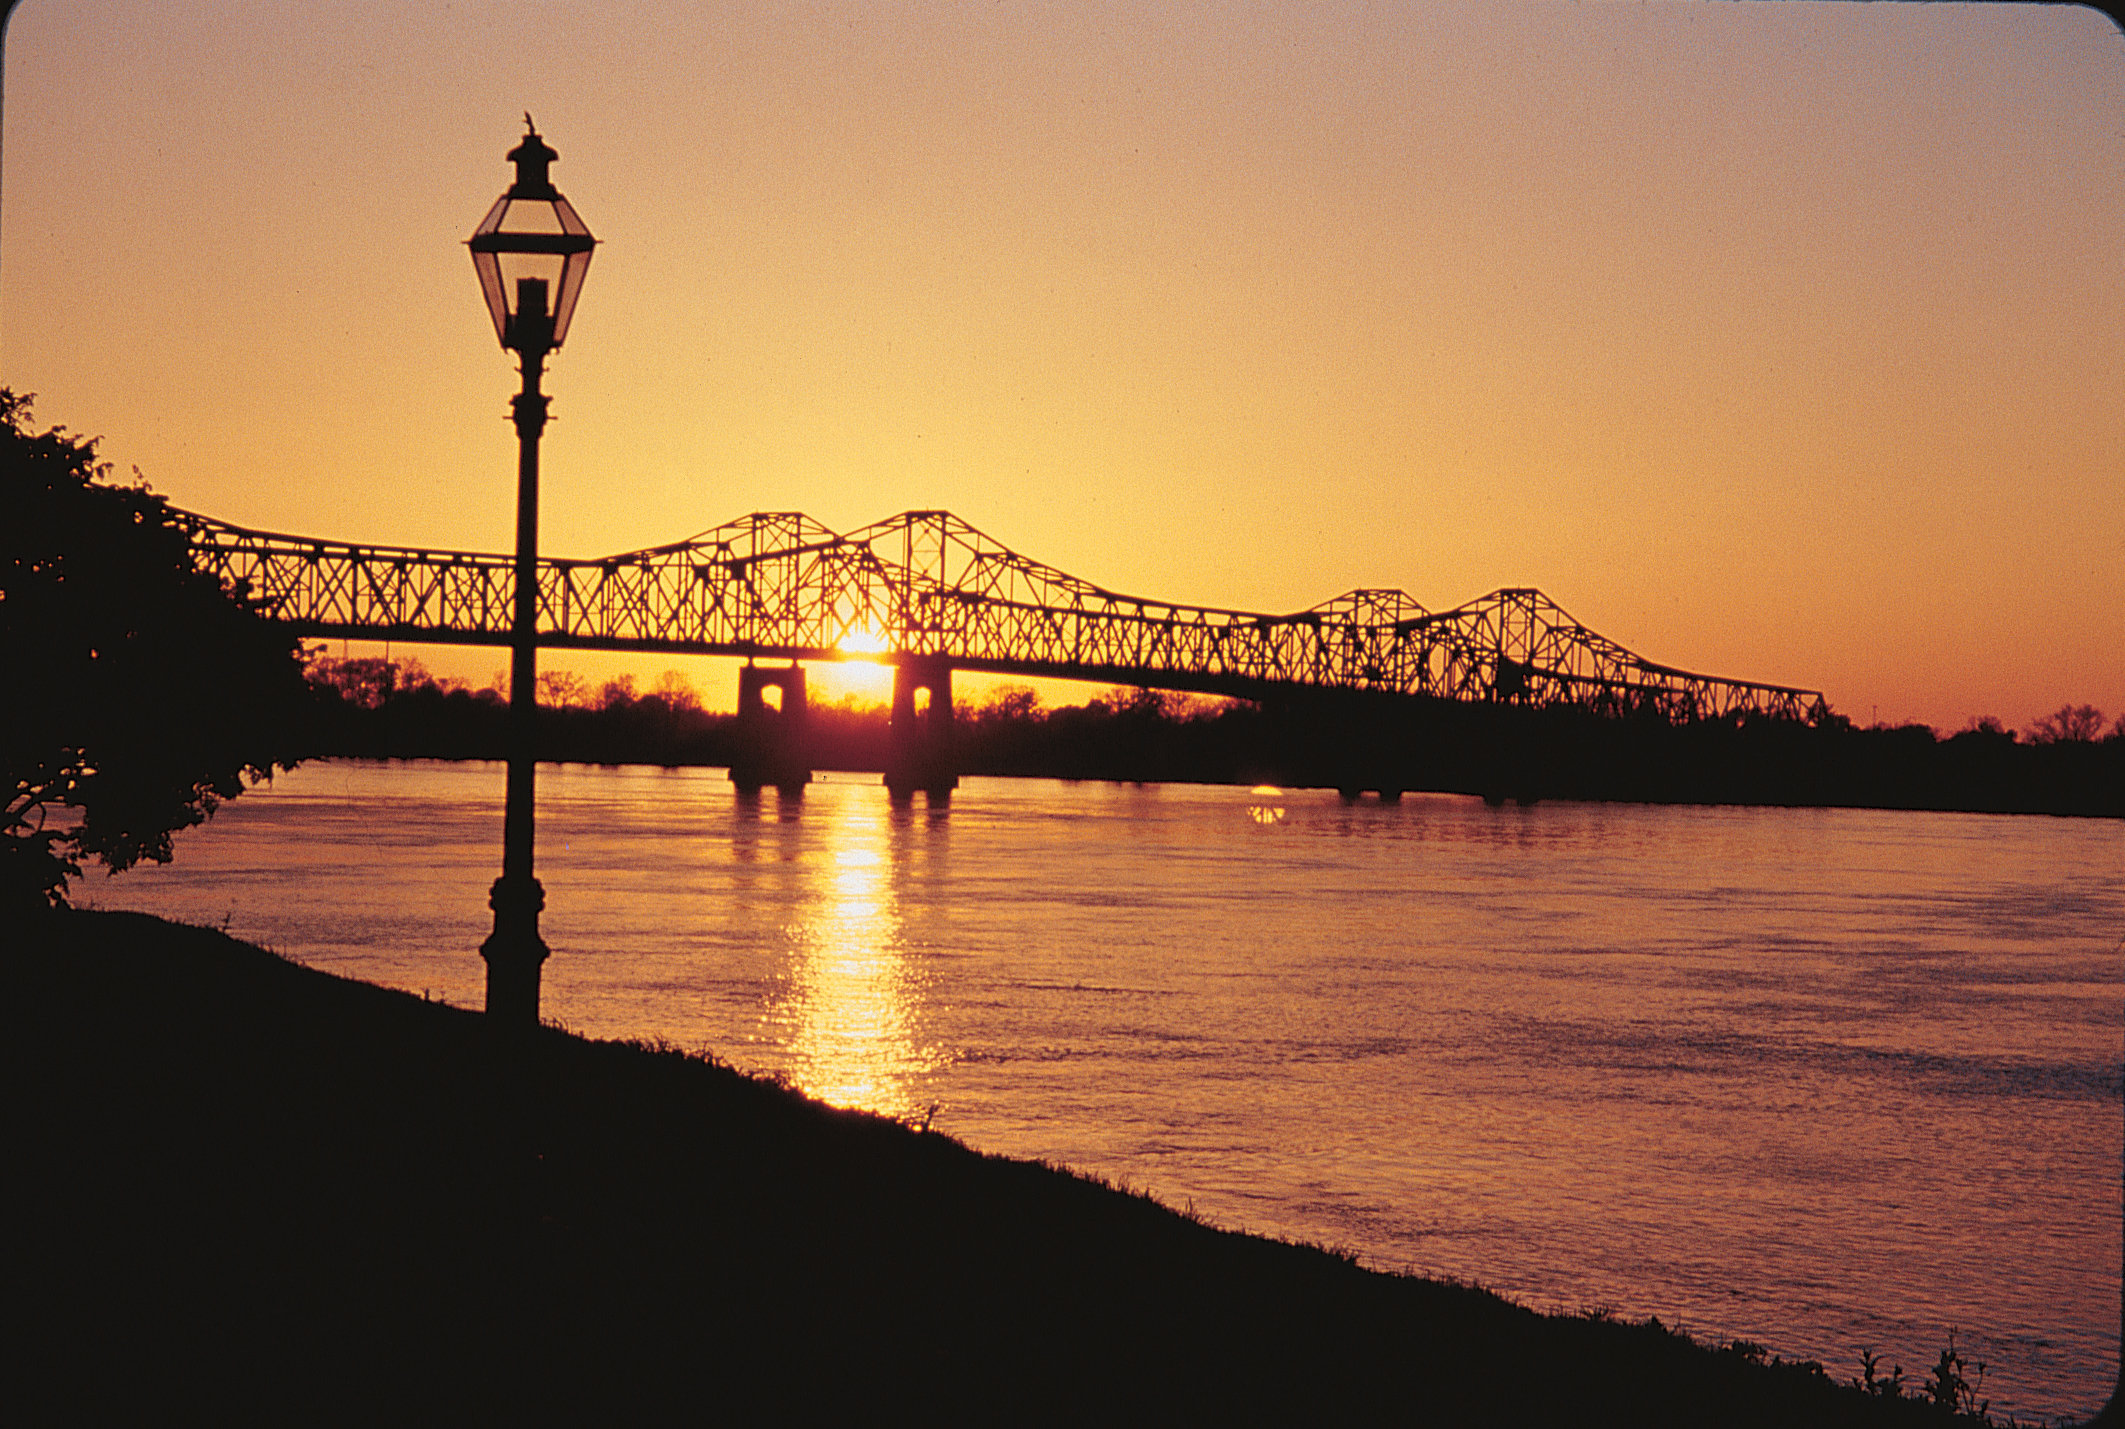 Bridge at Sunset.jpg